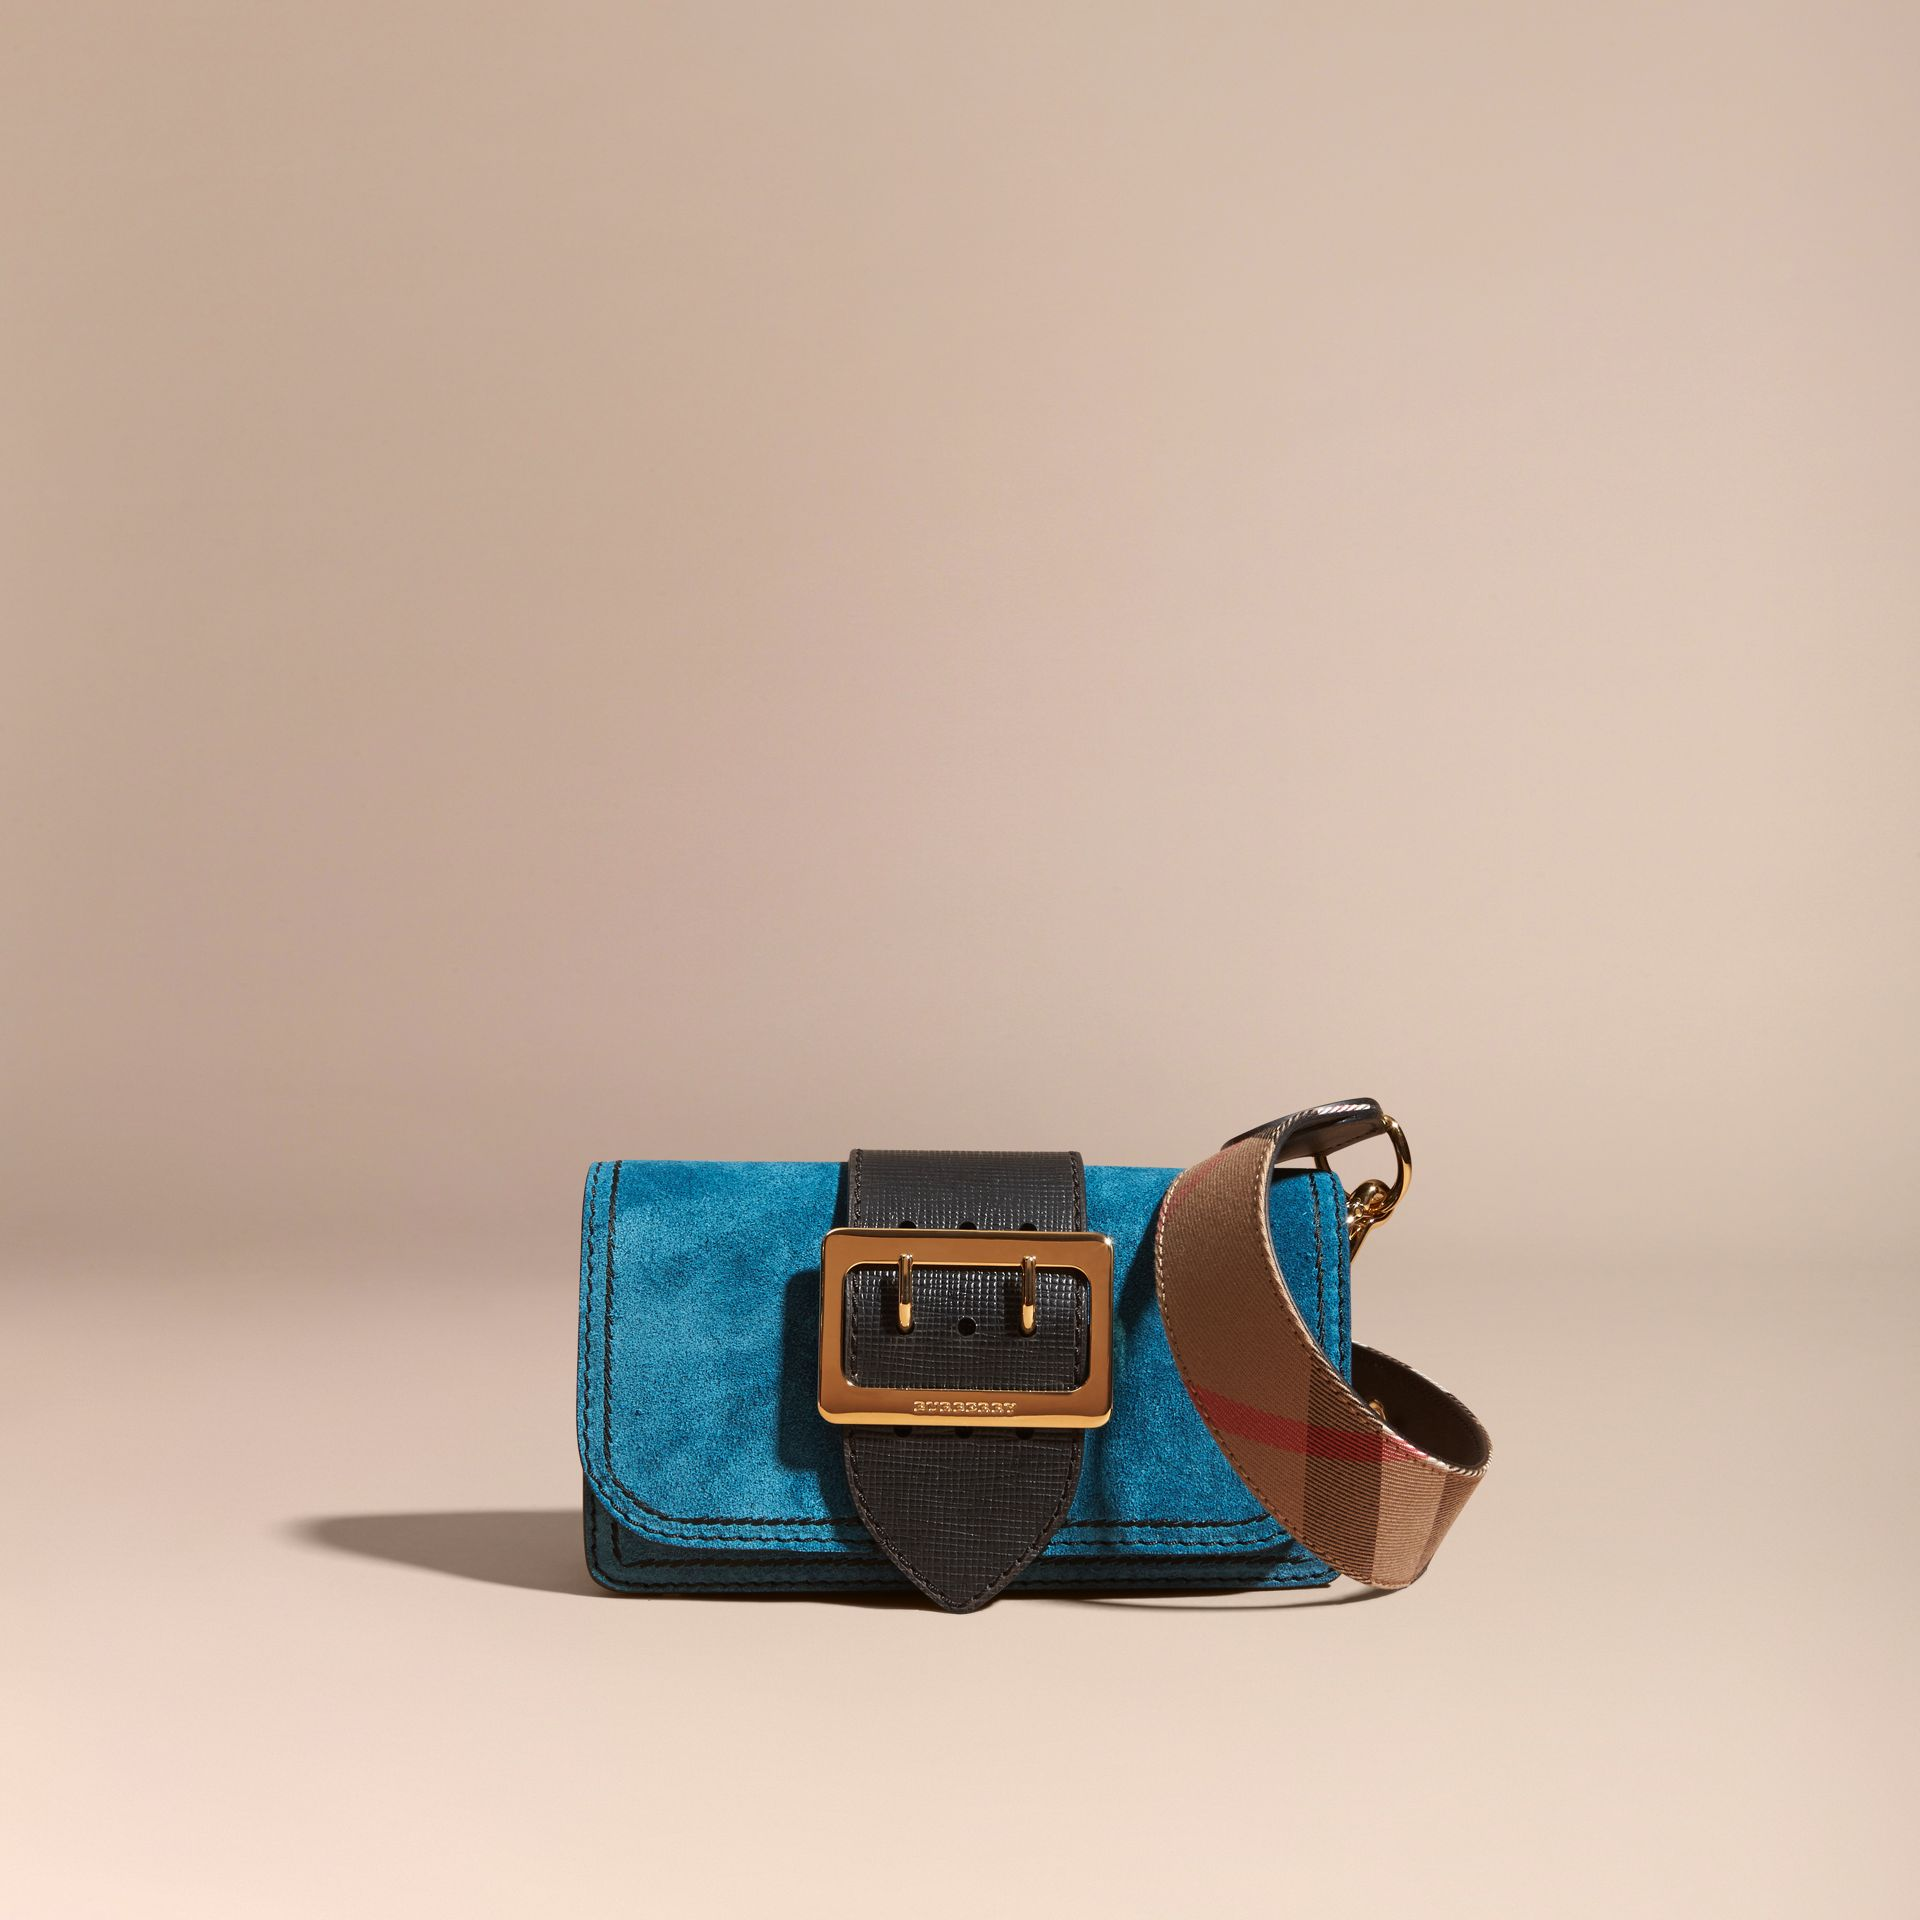 Peacock blue /black The Small Buckle Bag in Suede with Topstitching Peacock Blue /black - gallery image 9